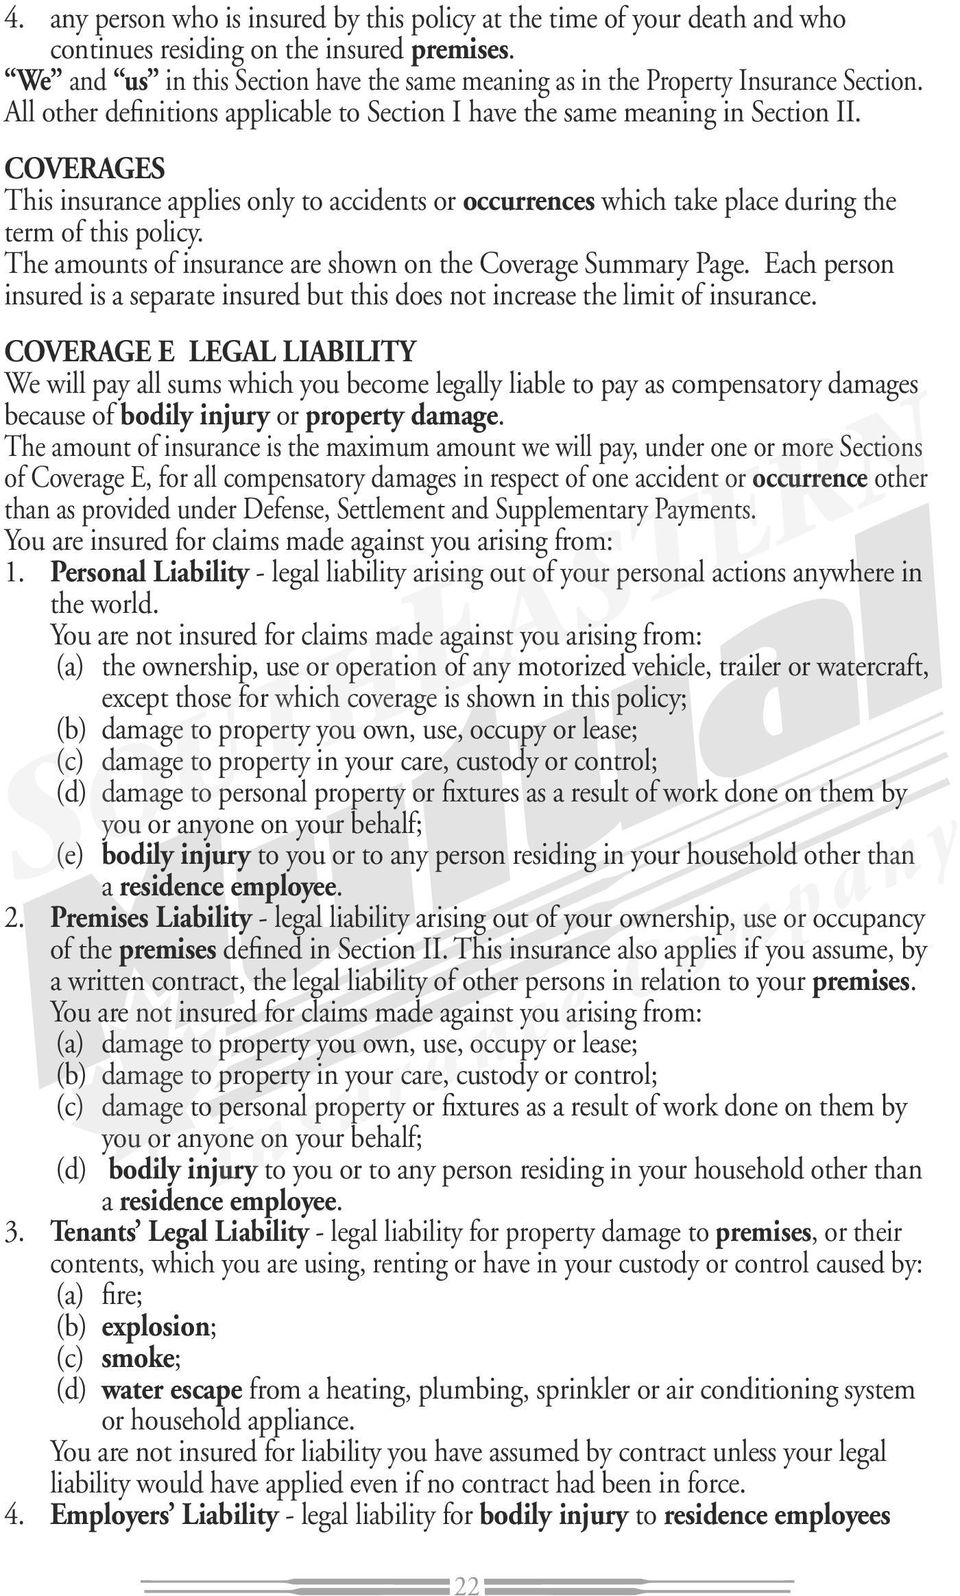 COVERAGES This insurance applies only to accidents or occurrences which take place during the term of this policy. The amounts of insurance are shown on the Coverage Summary Page.